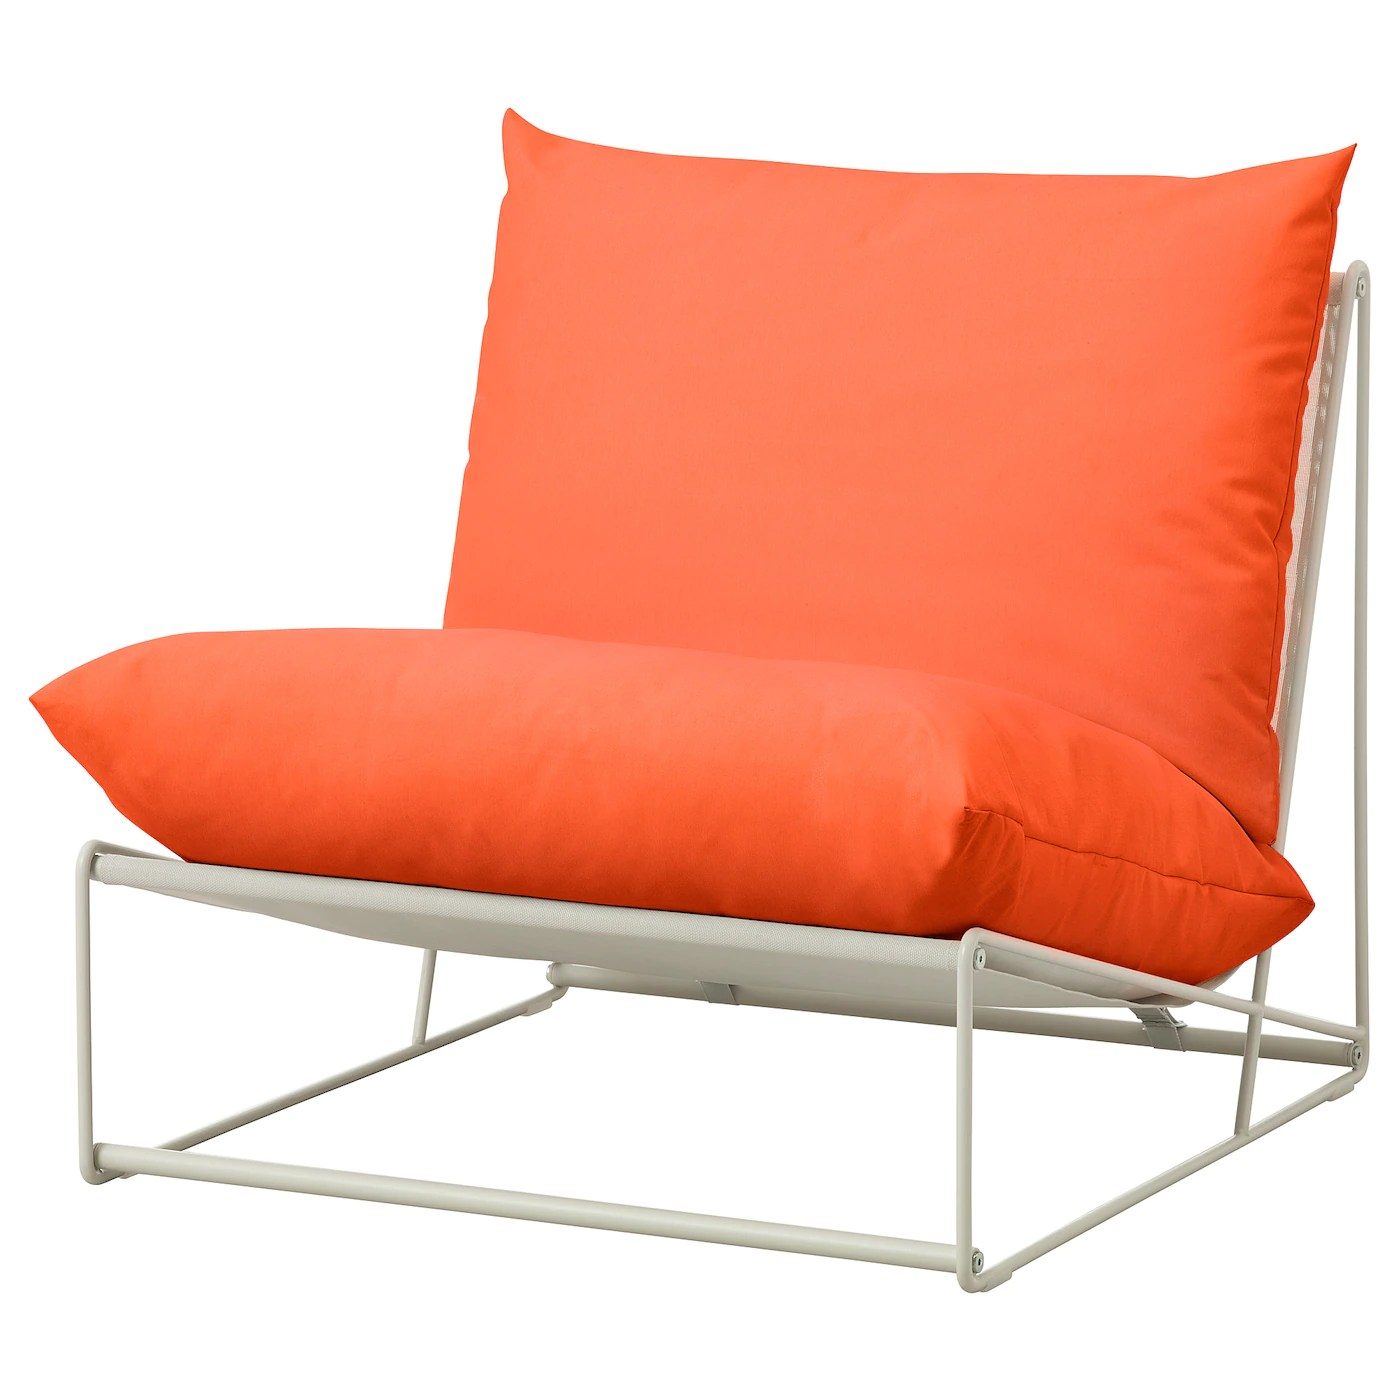 Where To Buy Beach Chairs Sun Loungers Hammocks Ikea